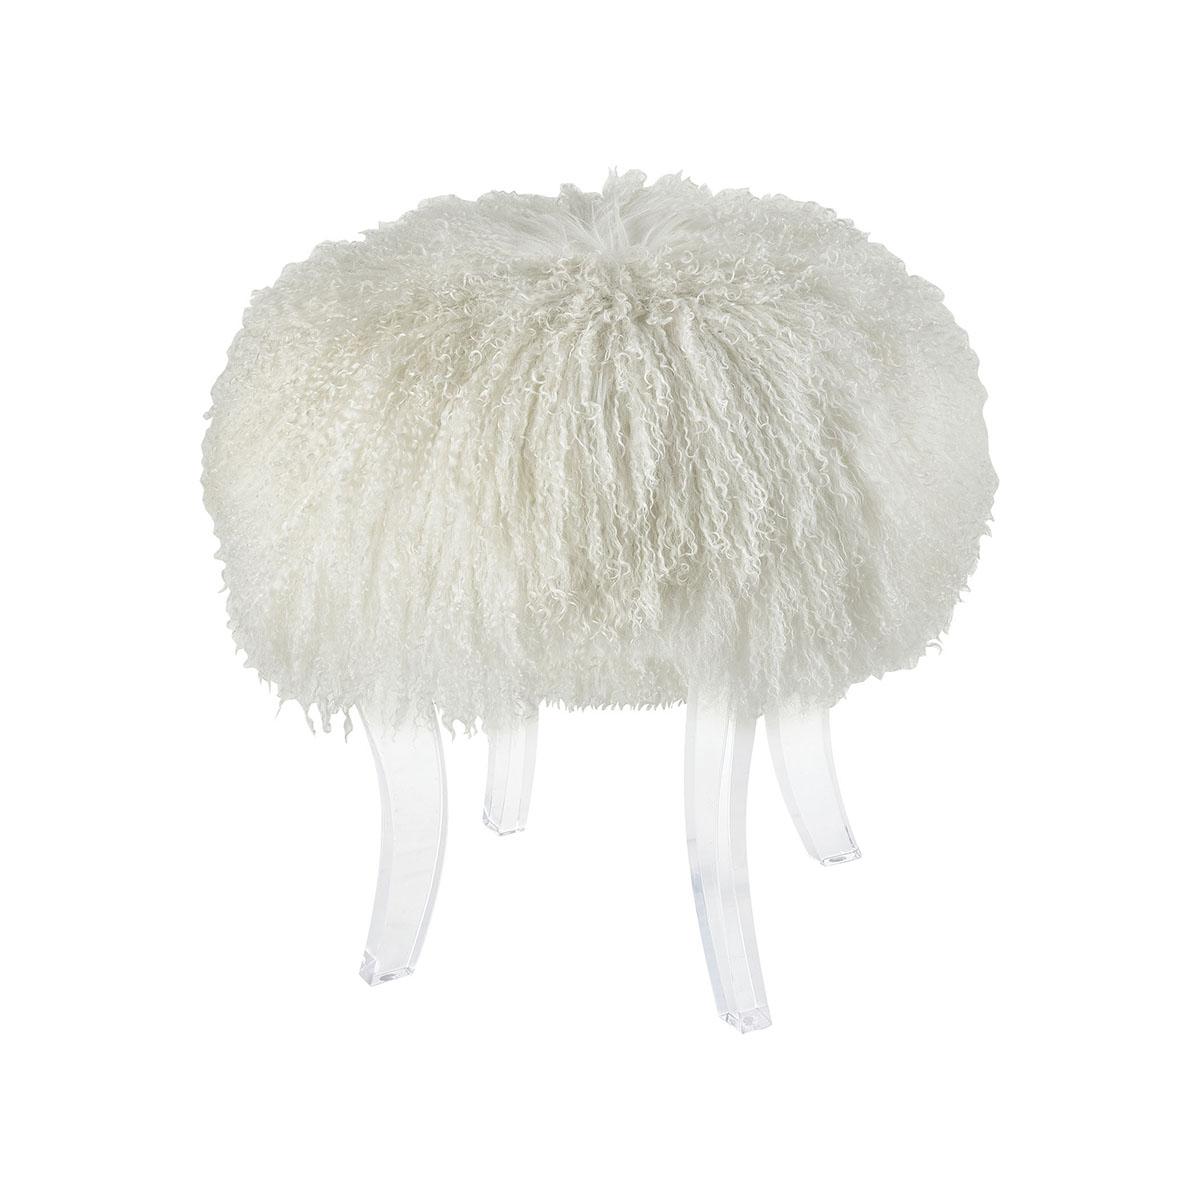 Hair Apparent Stool 3169-063 | ELK Home